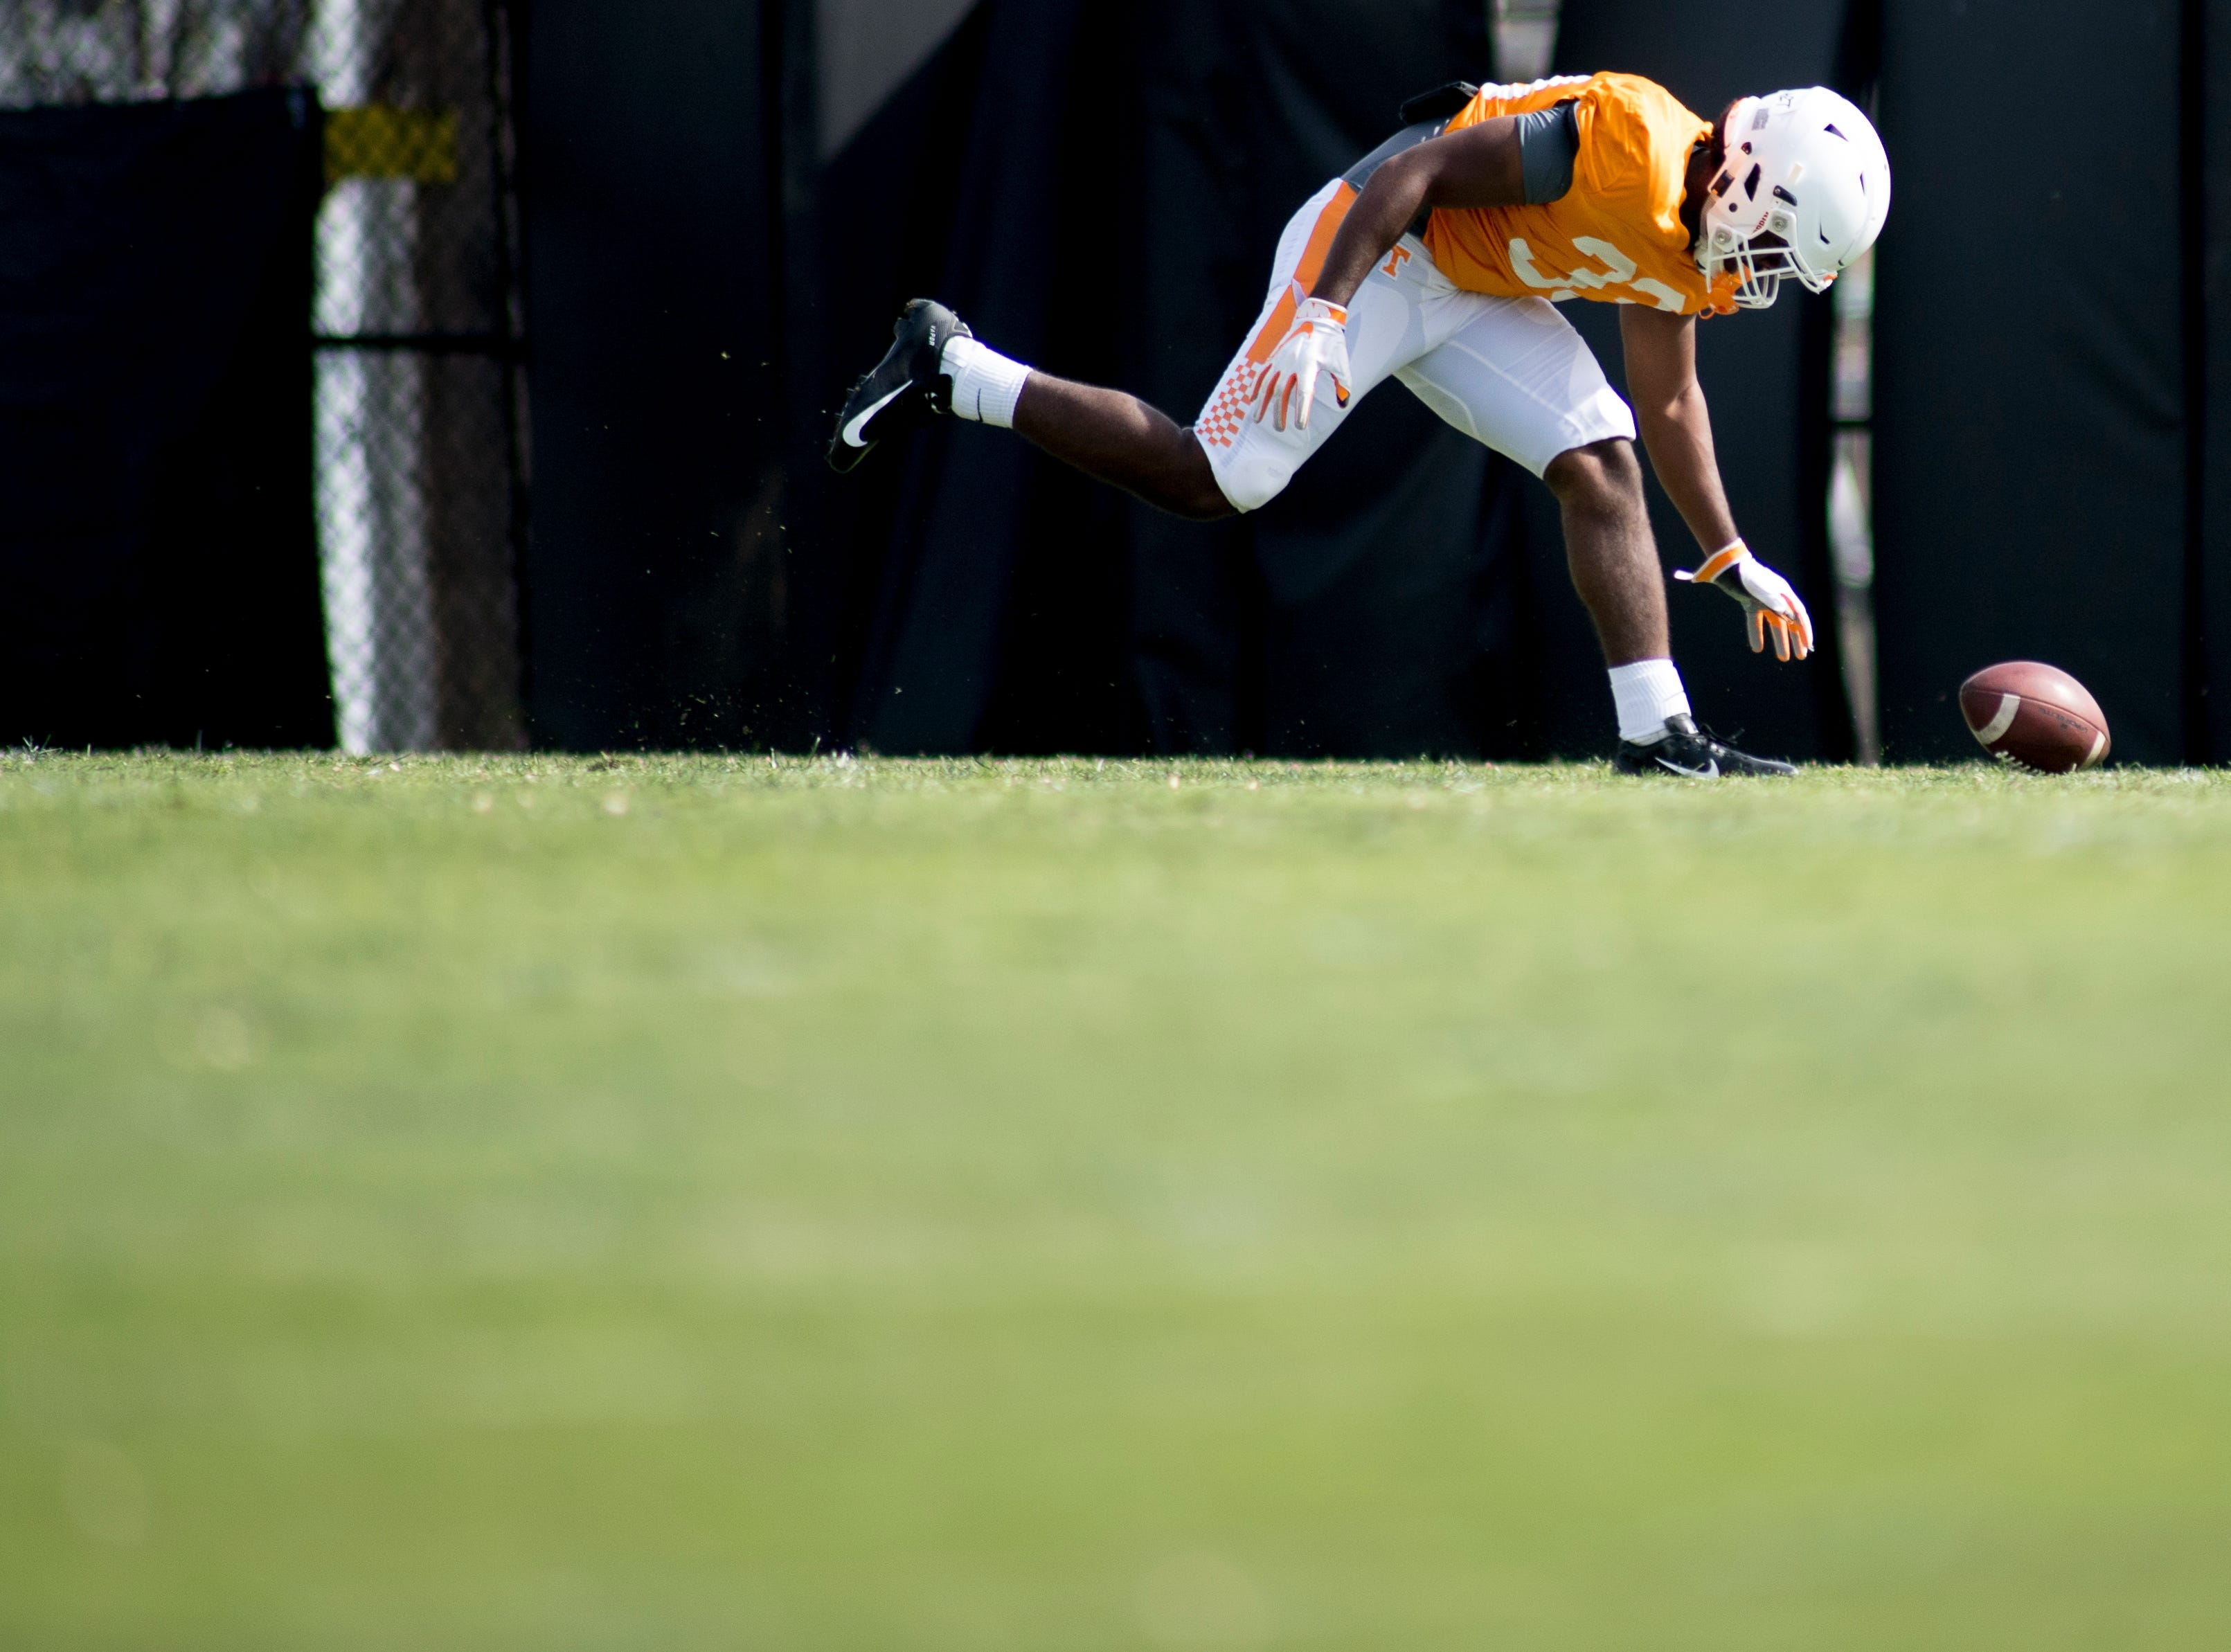 Tennessee's Jeremy Banks (33) misses the ball during Tennessee spring practice at Haslam Field in Knoxville, Tennessee on Thursday, April 11, 2019.